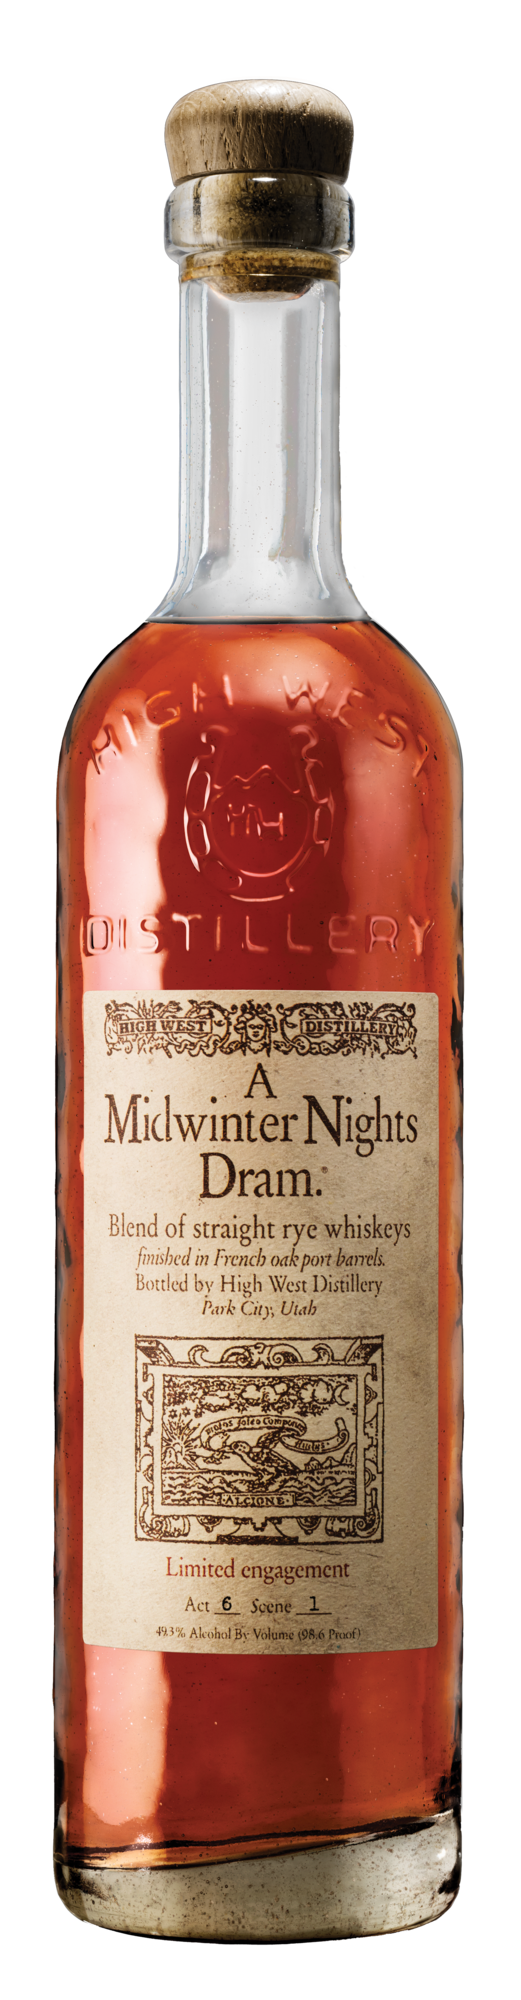 High West A Midwinter Nights Dram Blend of Straight Rye Whiskeys